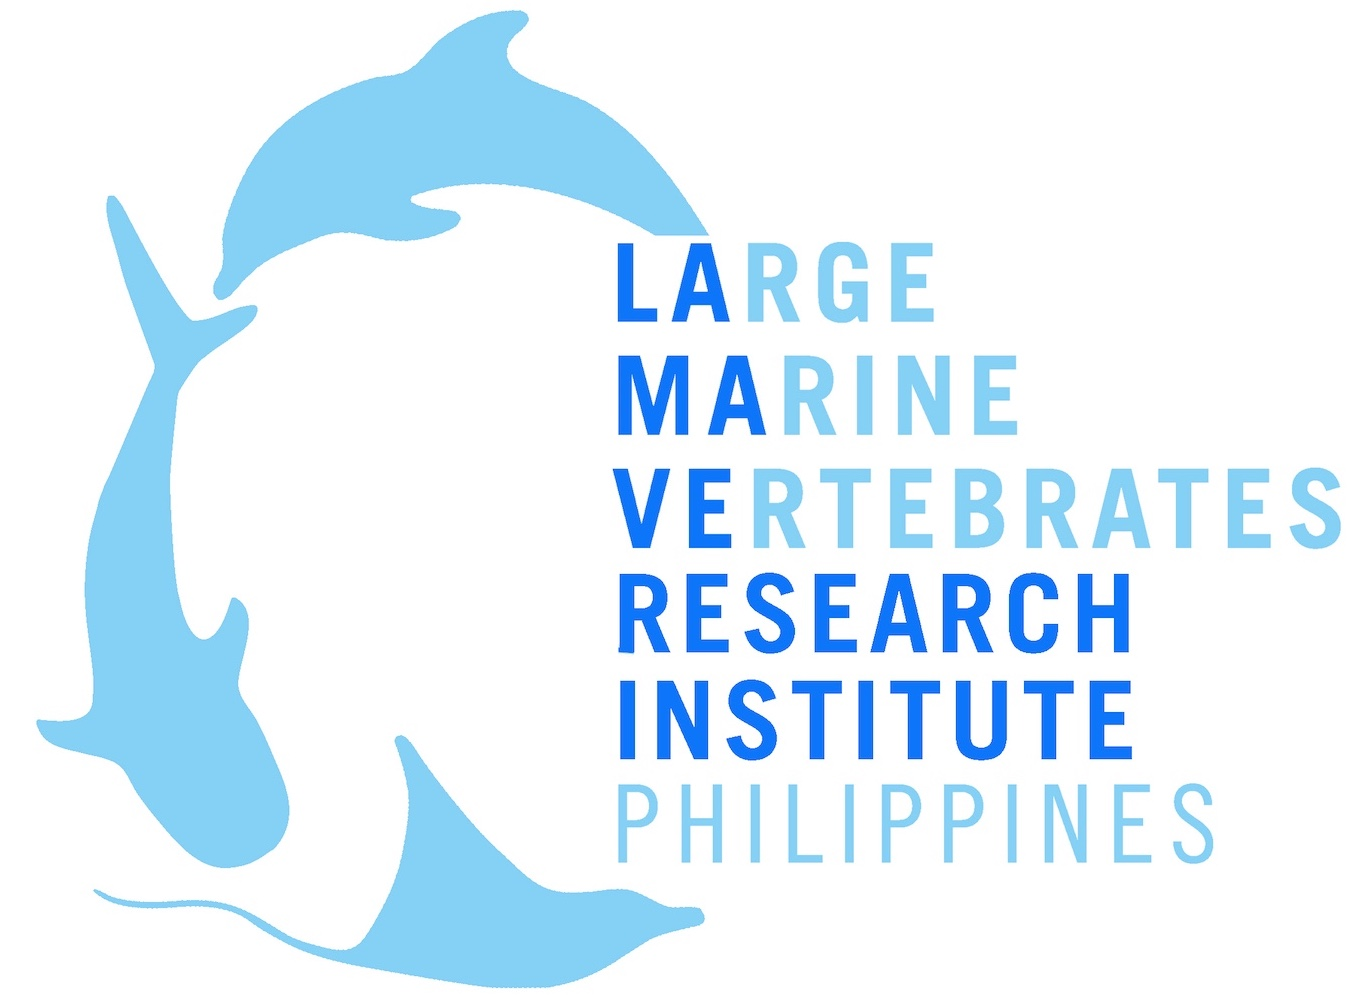 large-marine-veretebrates-research-institute-philippines-lamave-logo